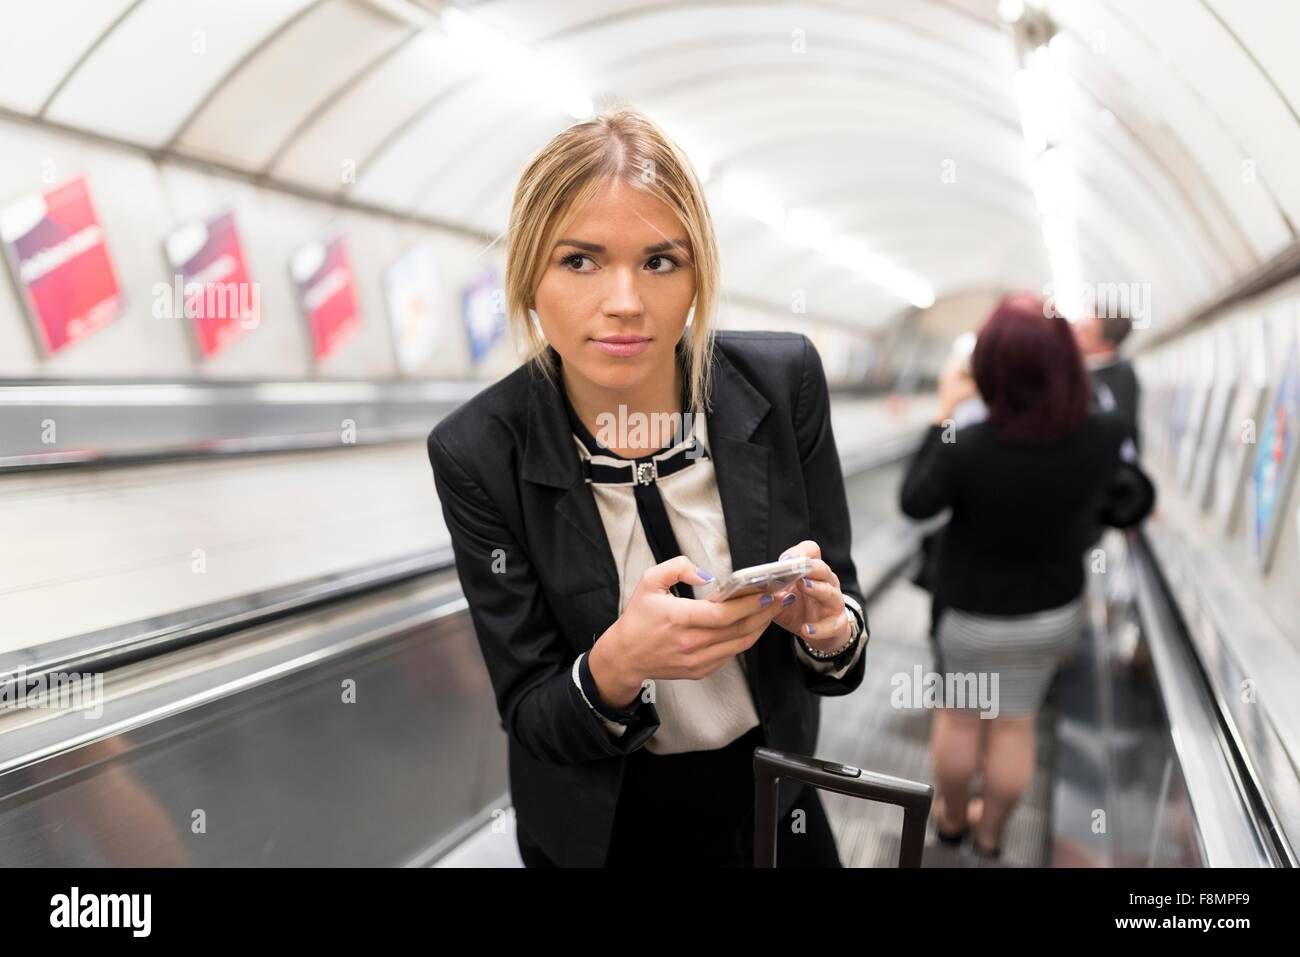 Businesswoman texting on escalator, métro de Londres, UK Photo Stock